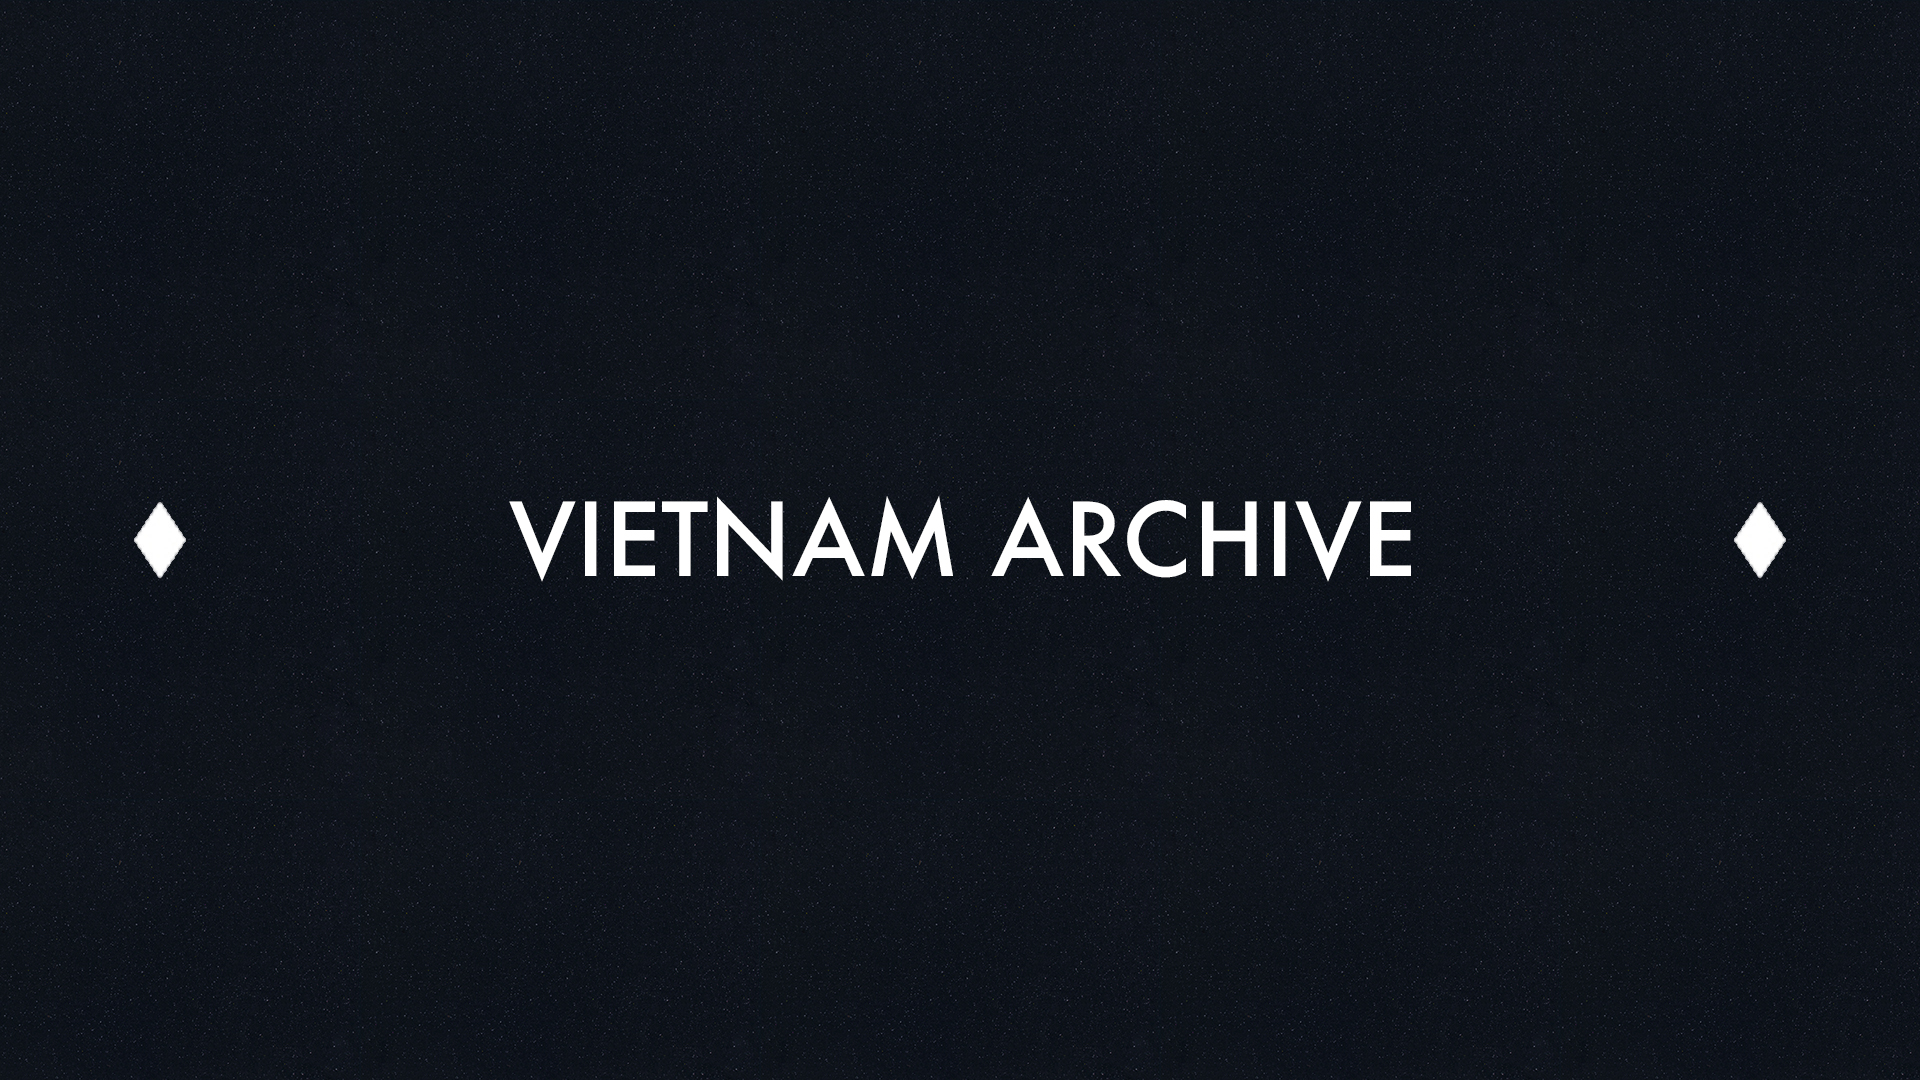 Texas Tech Vietnam Center & Archive